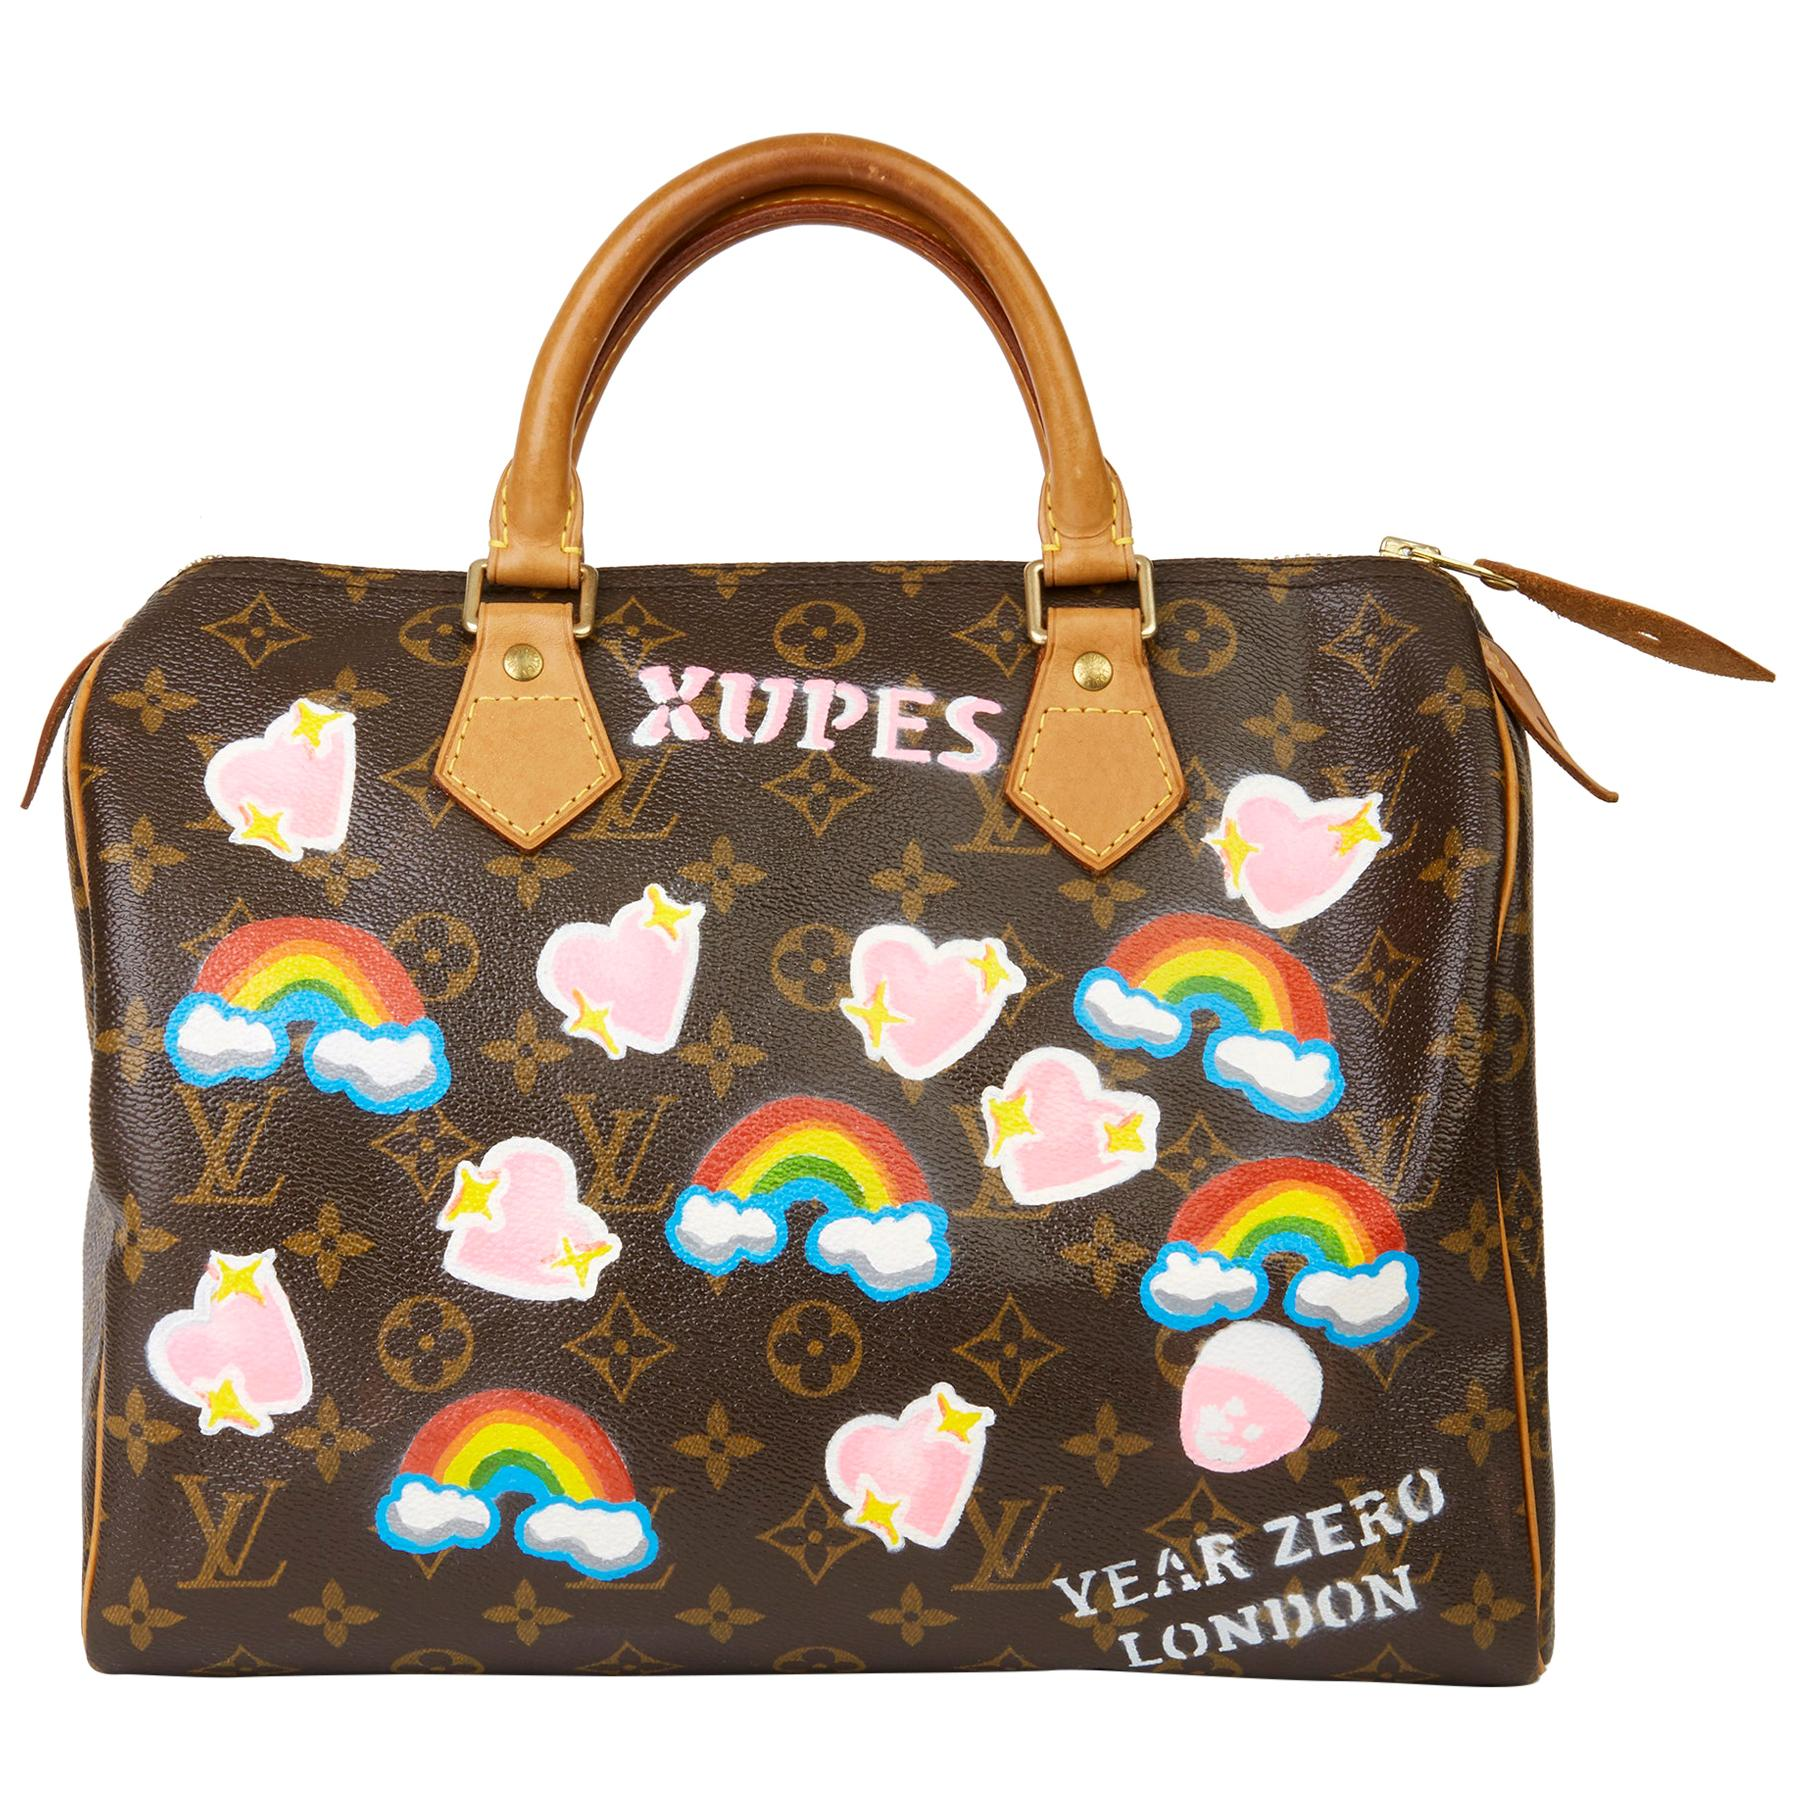 2002 Louis Vuitton Hand-painted  Love is Love Monogram Coated Canvas Speedy 30